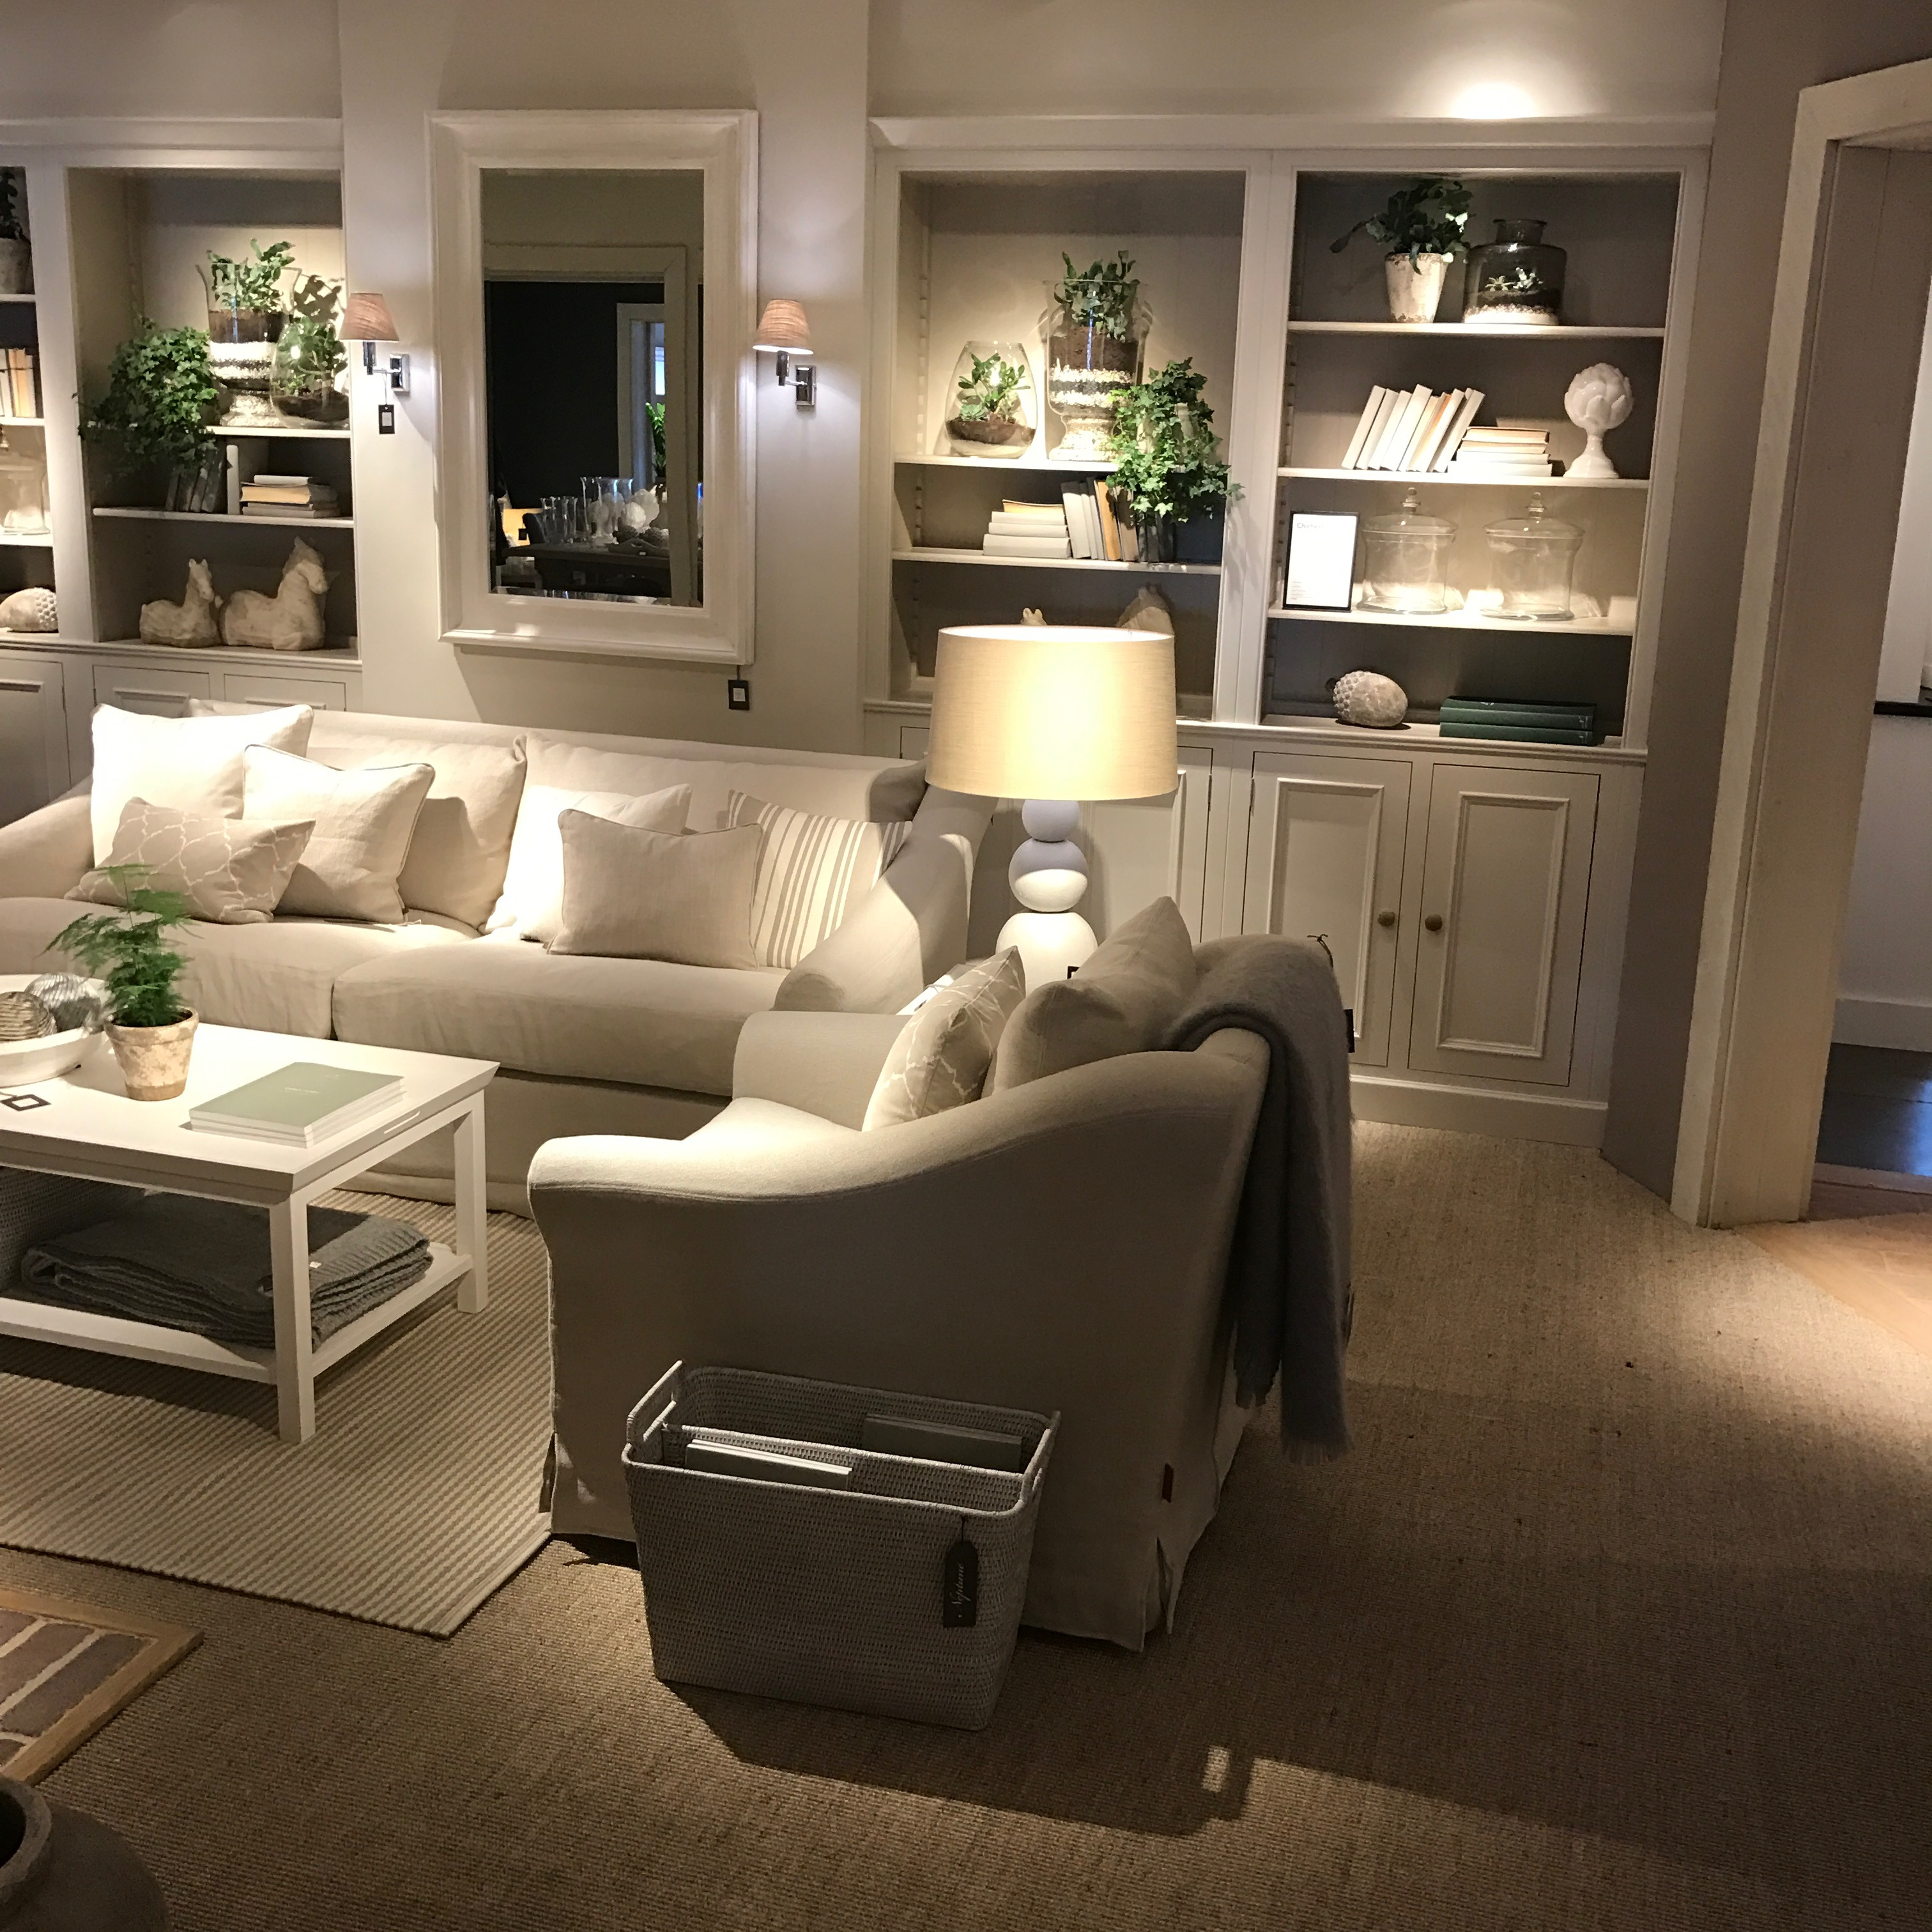 Home Store: Neptune Home Arrives In Wimbledon